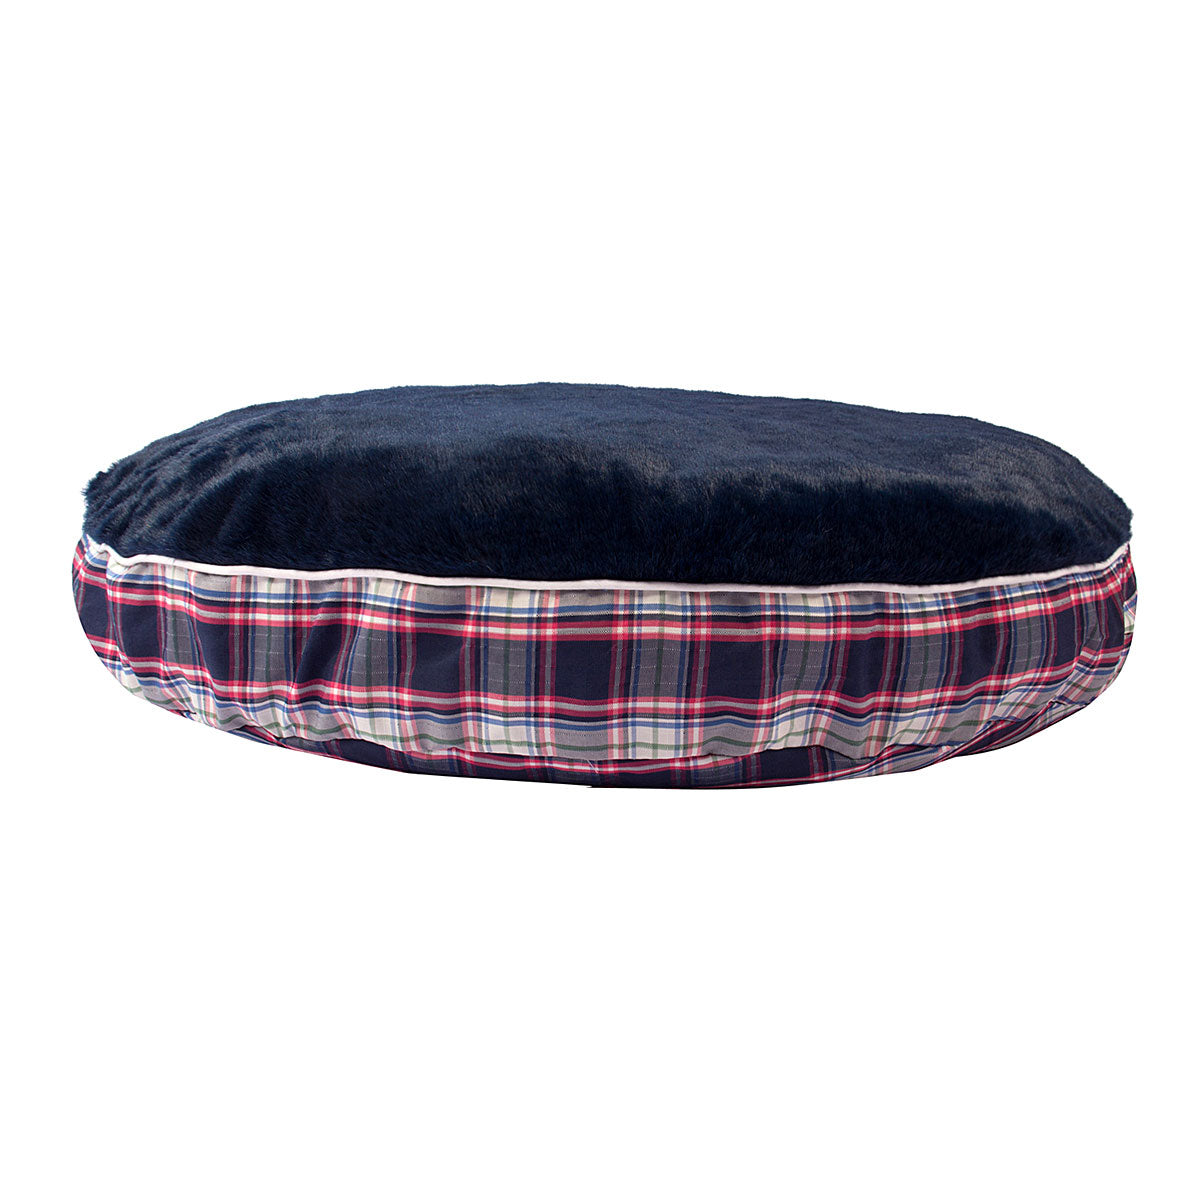 Halo Amber Plaid Round Dog Bed_1